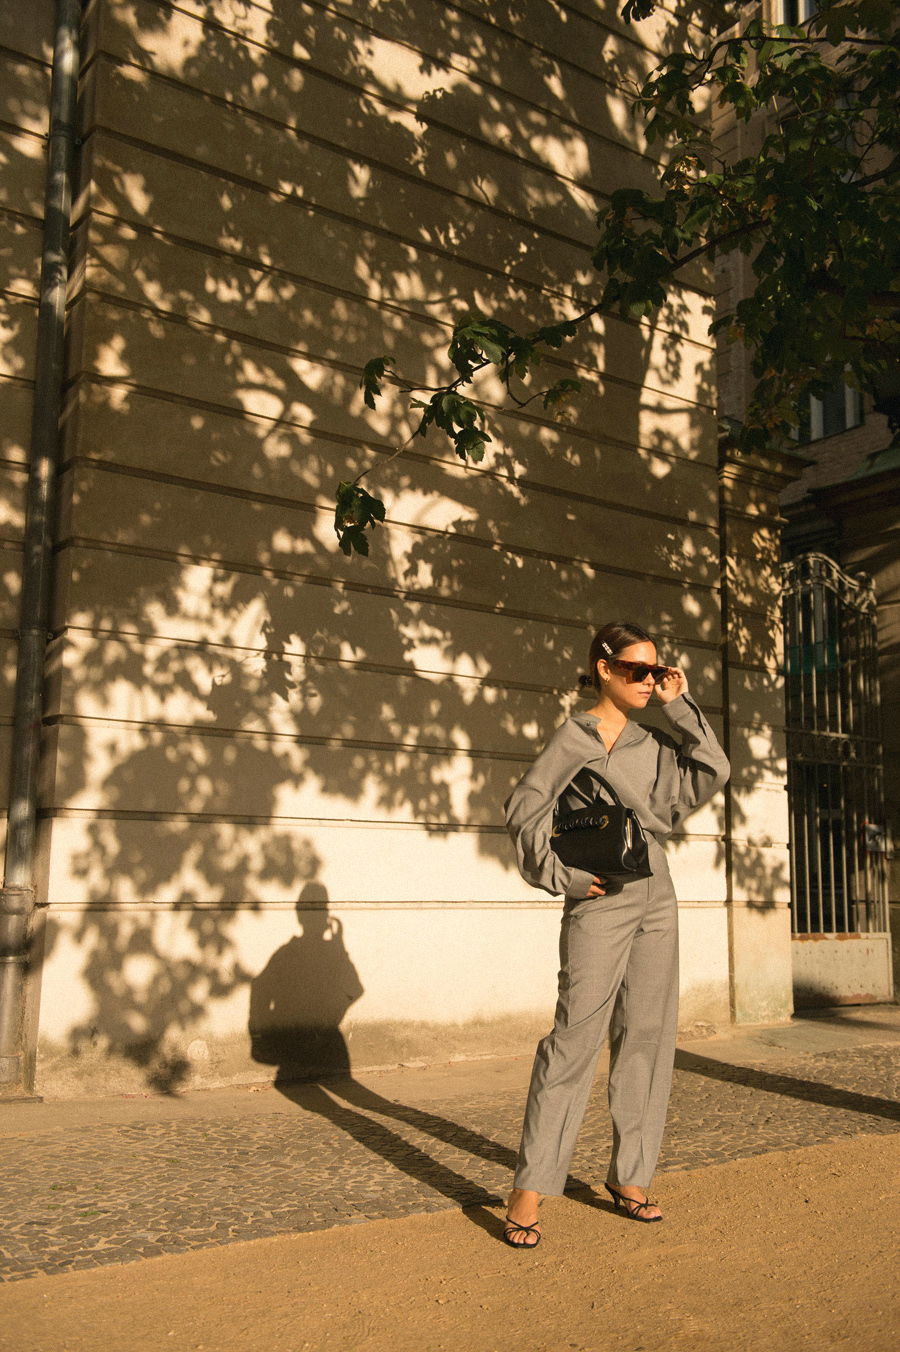 Nisi is wearing: Totême Grey shirt and trousers, Céline Purse with Eyelets bag, Strappy sandals, Céline Sunglasses, Pearl hair clip